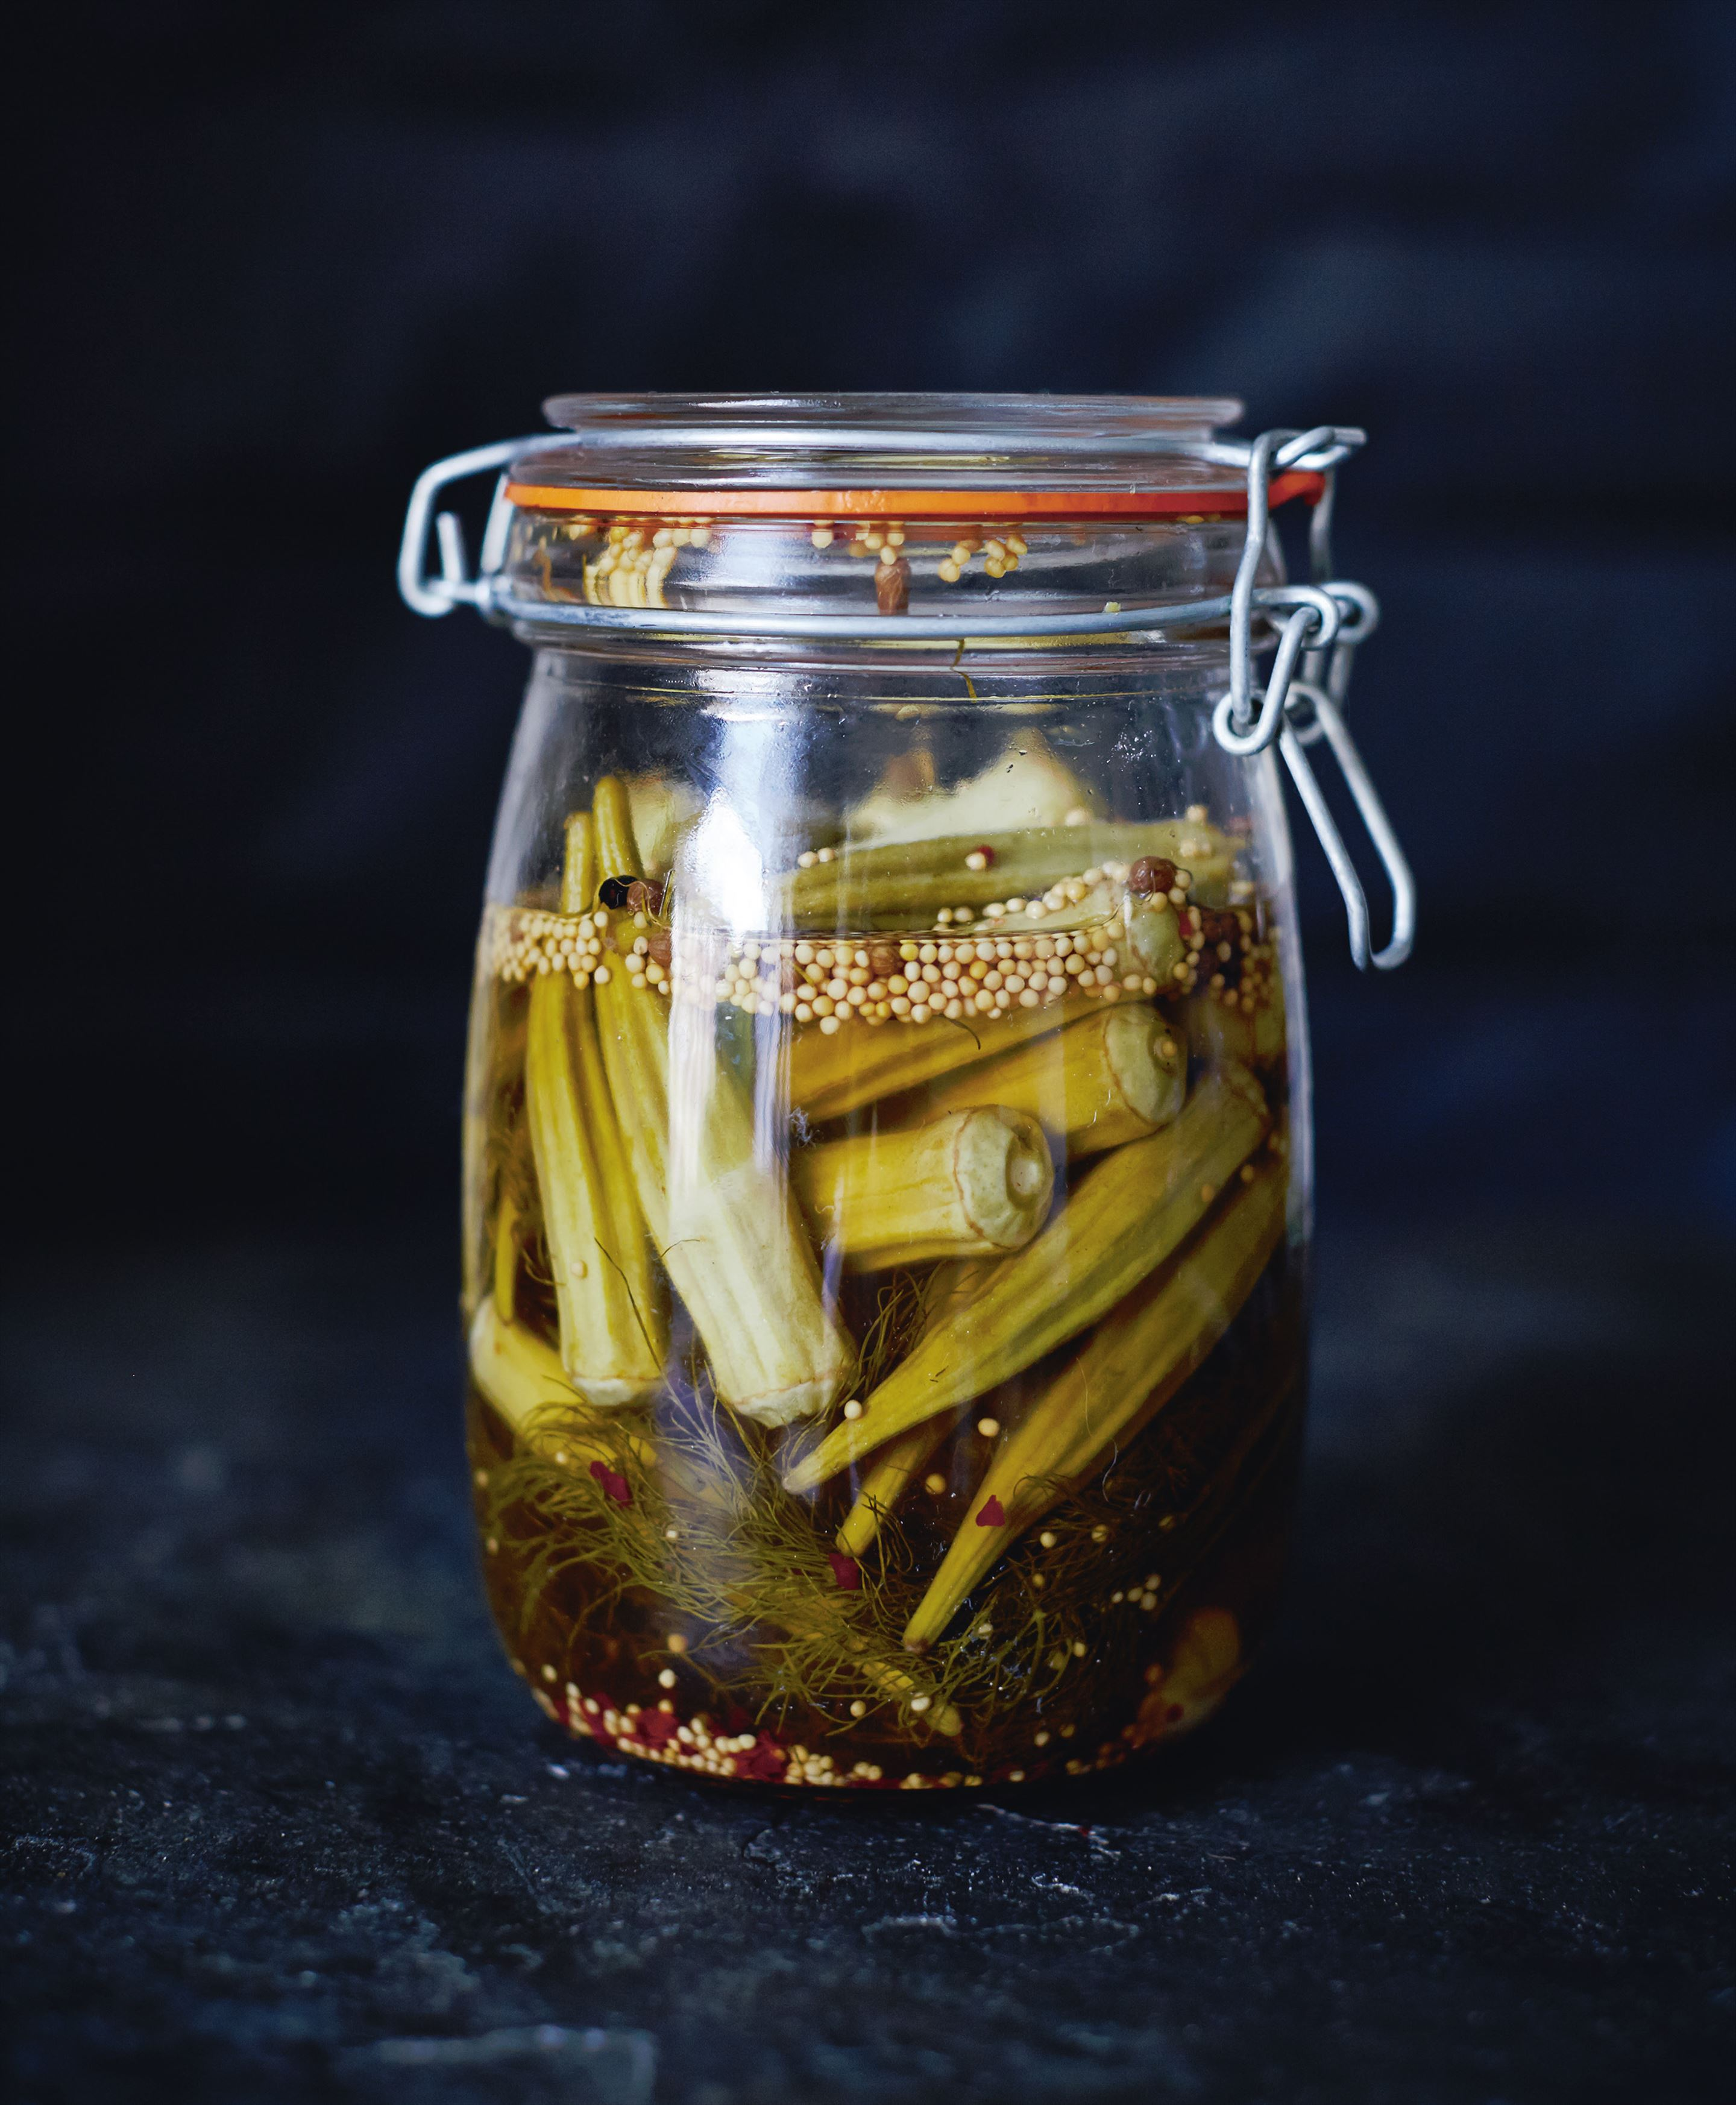 Bourbon pickled okra